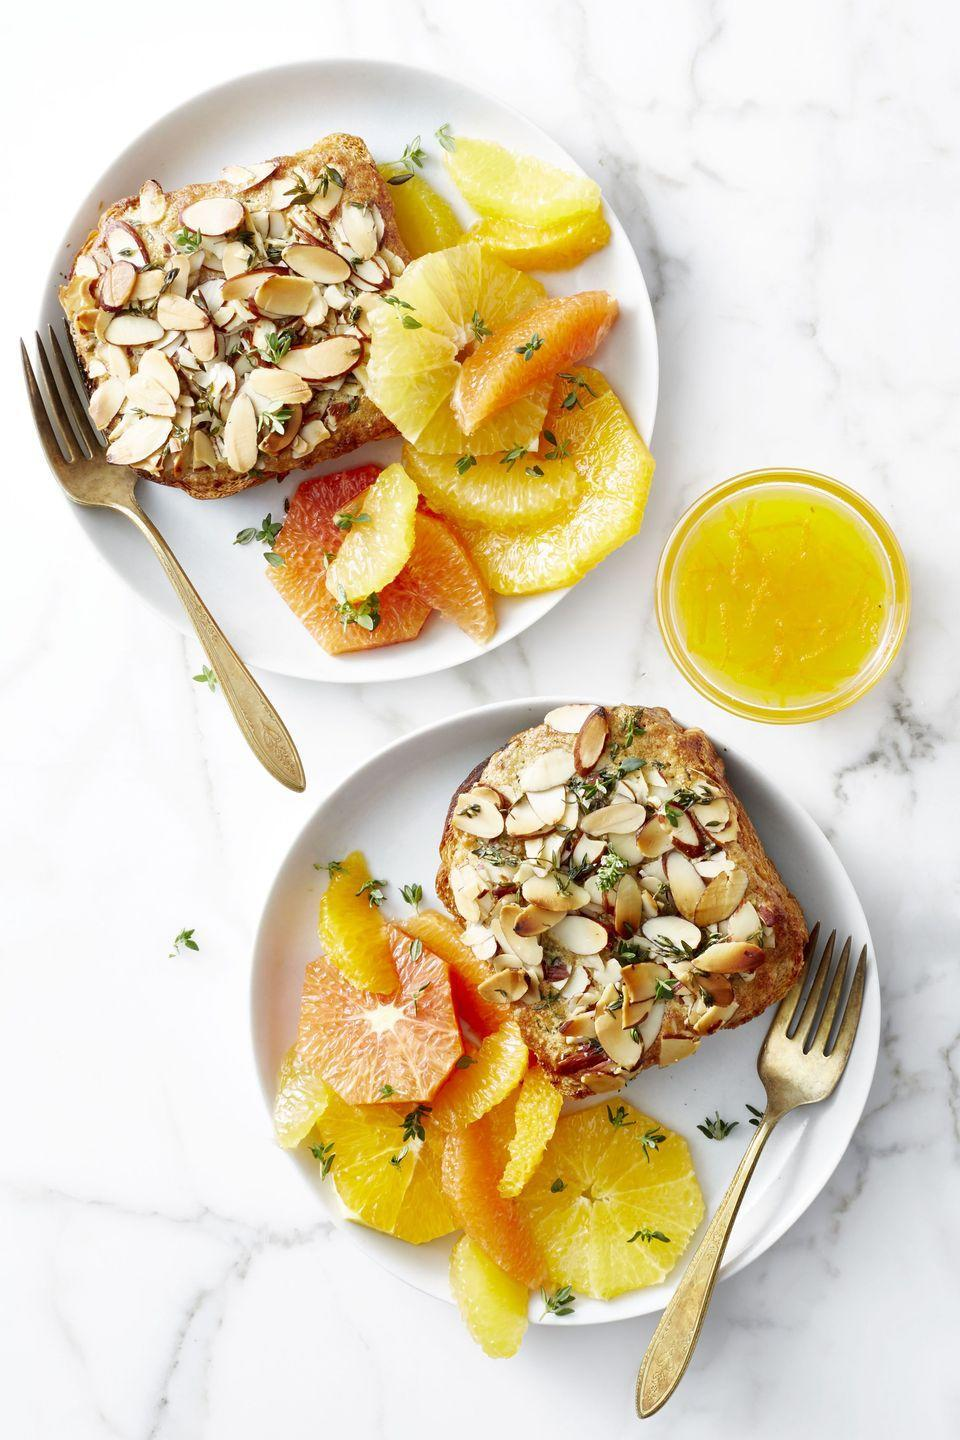 """<p>Spruce up this nutty brioche with slices of colorful citrus.</p><p><em><a href=""""https://www.goodhousekeeping.com/food-recipes/a46689/twice-baked-citrus-almond-brioche/"""" rel=""""nofollow noopener"""" target=""""_blank"""" data-ylk=""""slk:Get the recipe for Twice-Baked Citrus-Almond Brioche »"""" class=""""link rapid-noclick-resp"""">Get the recipe for Twice-Baked Citrus-Almond Brioche »</a></em></p>"""